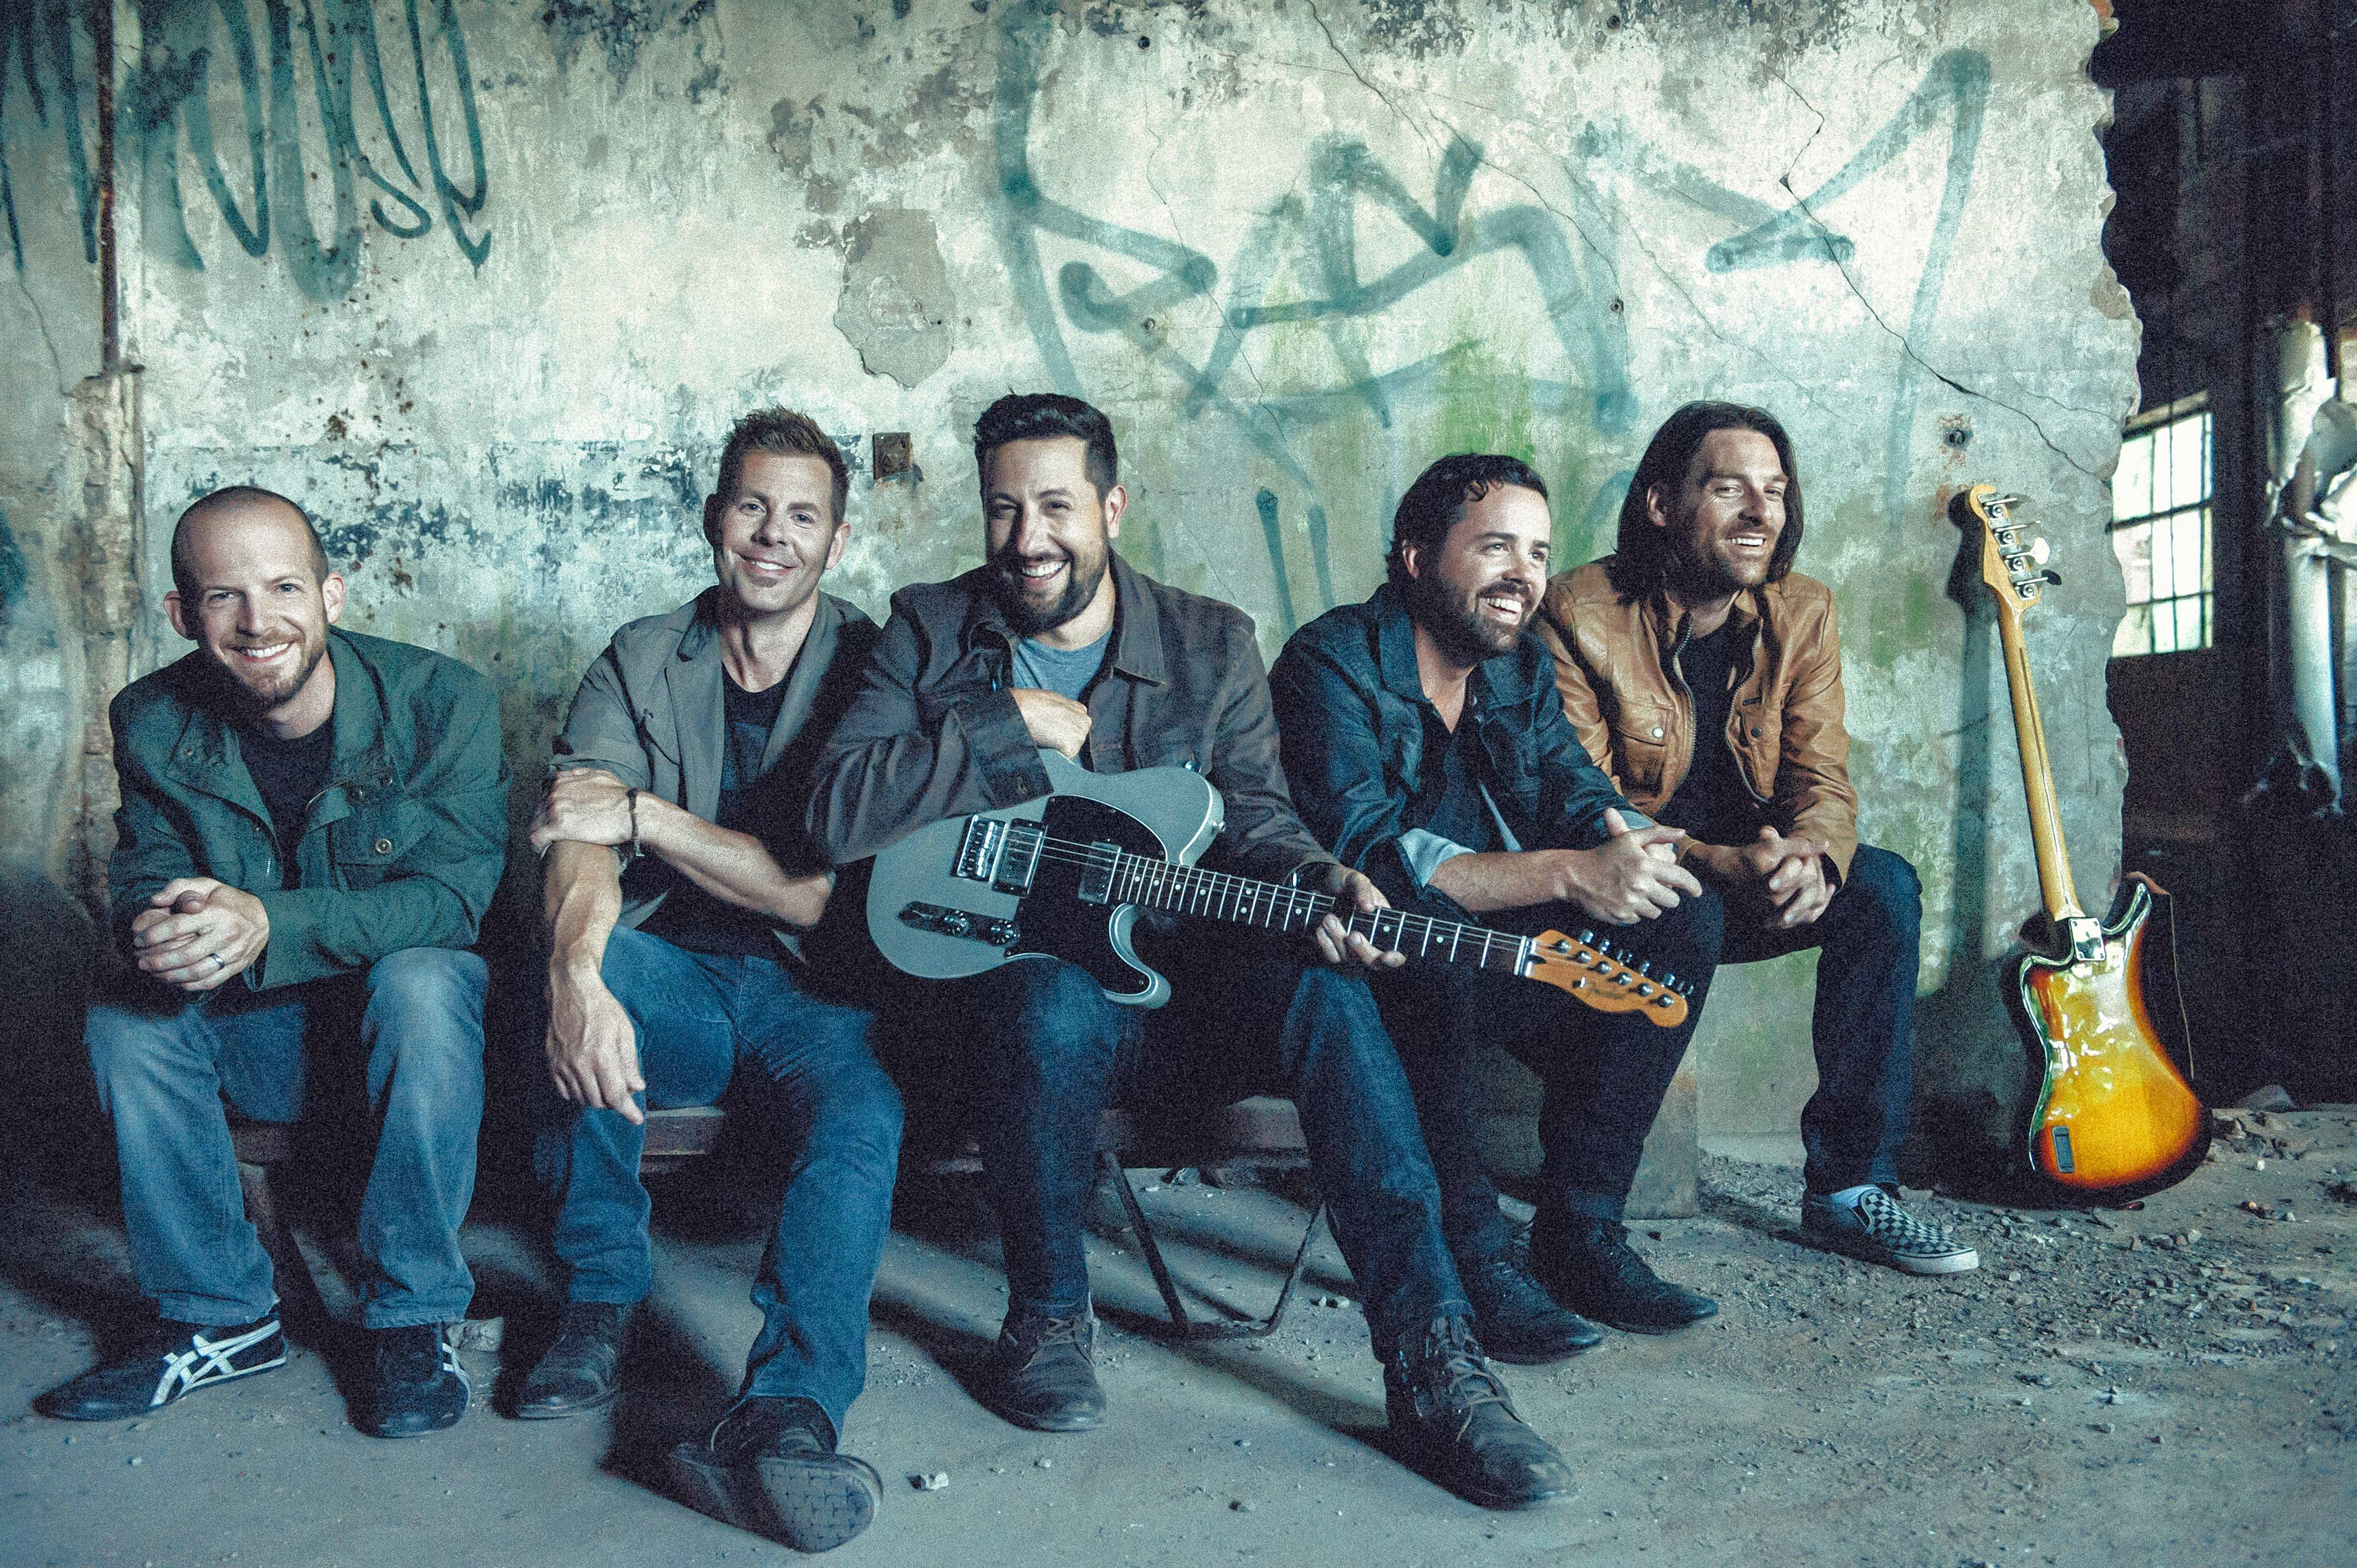 2018 CMA Vocal Group of the Year winner Old Dominion was announced Monday as one of three headliners for Chicago's Windy City Smokeout, set for July 12 to 14.